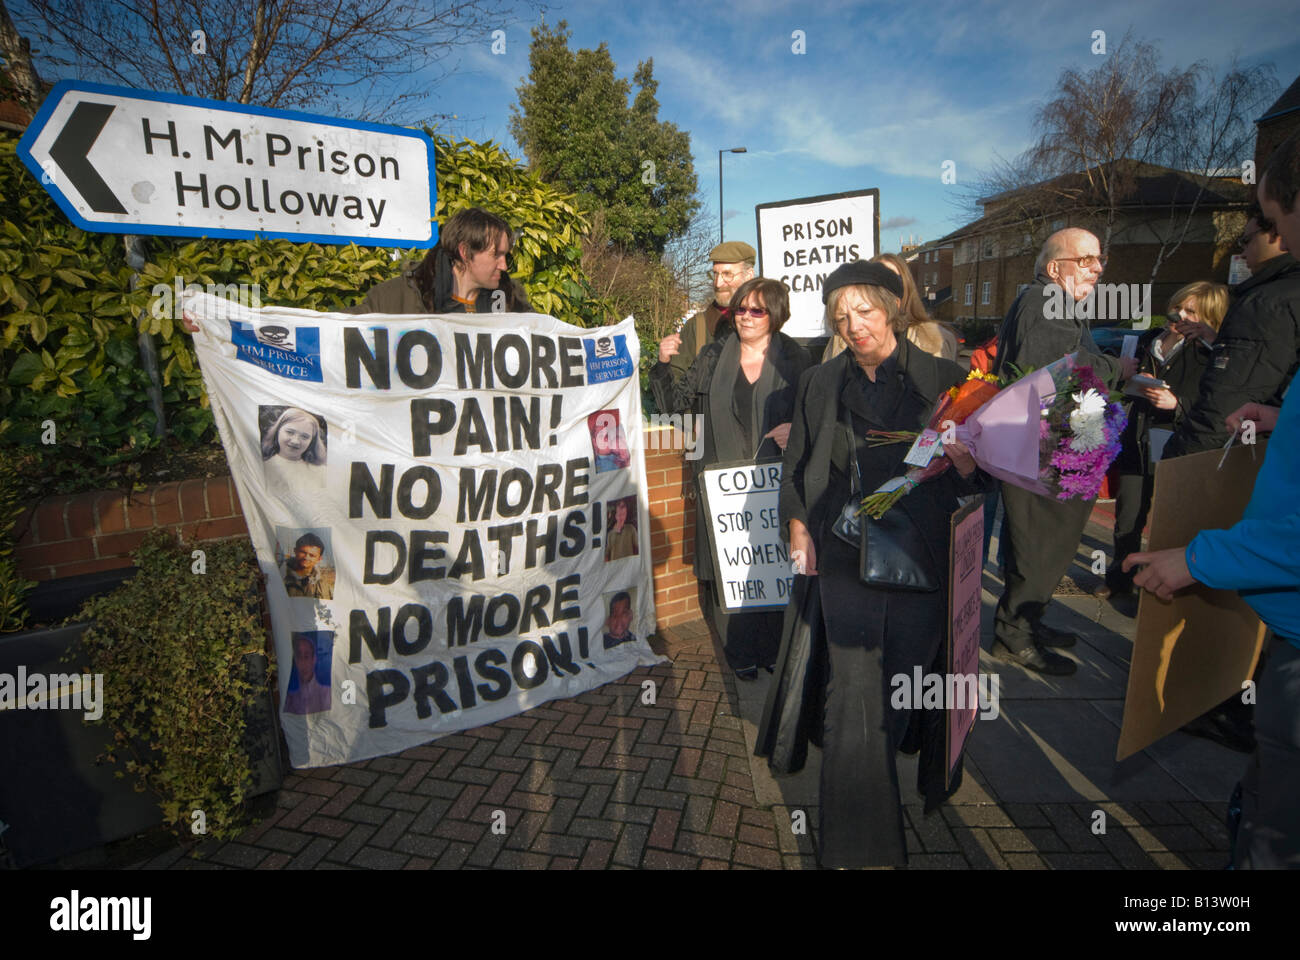 Pauline Campbell and other demonstrators with flowers and placards outside Holloway prison call for no more deaths - Stock Image